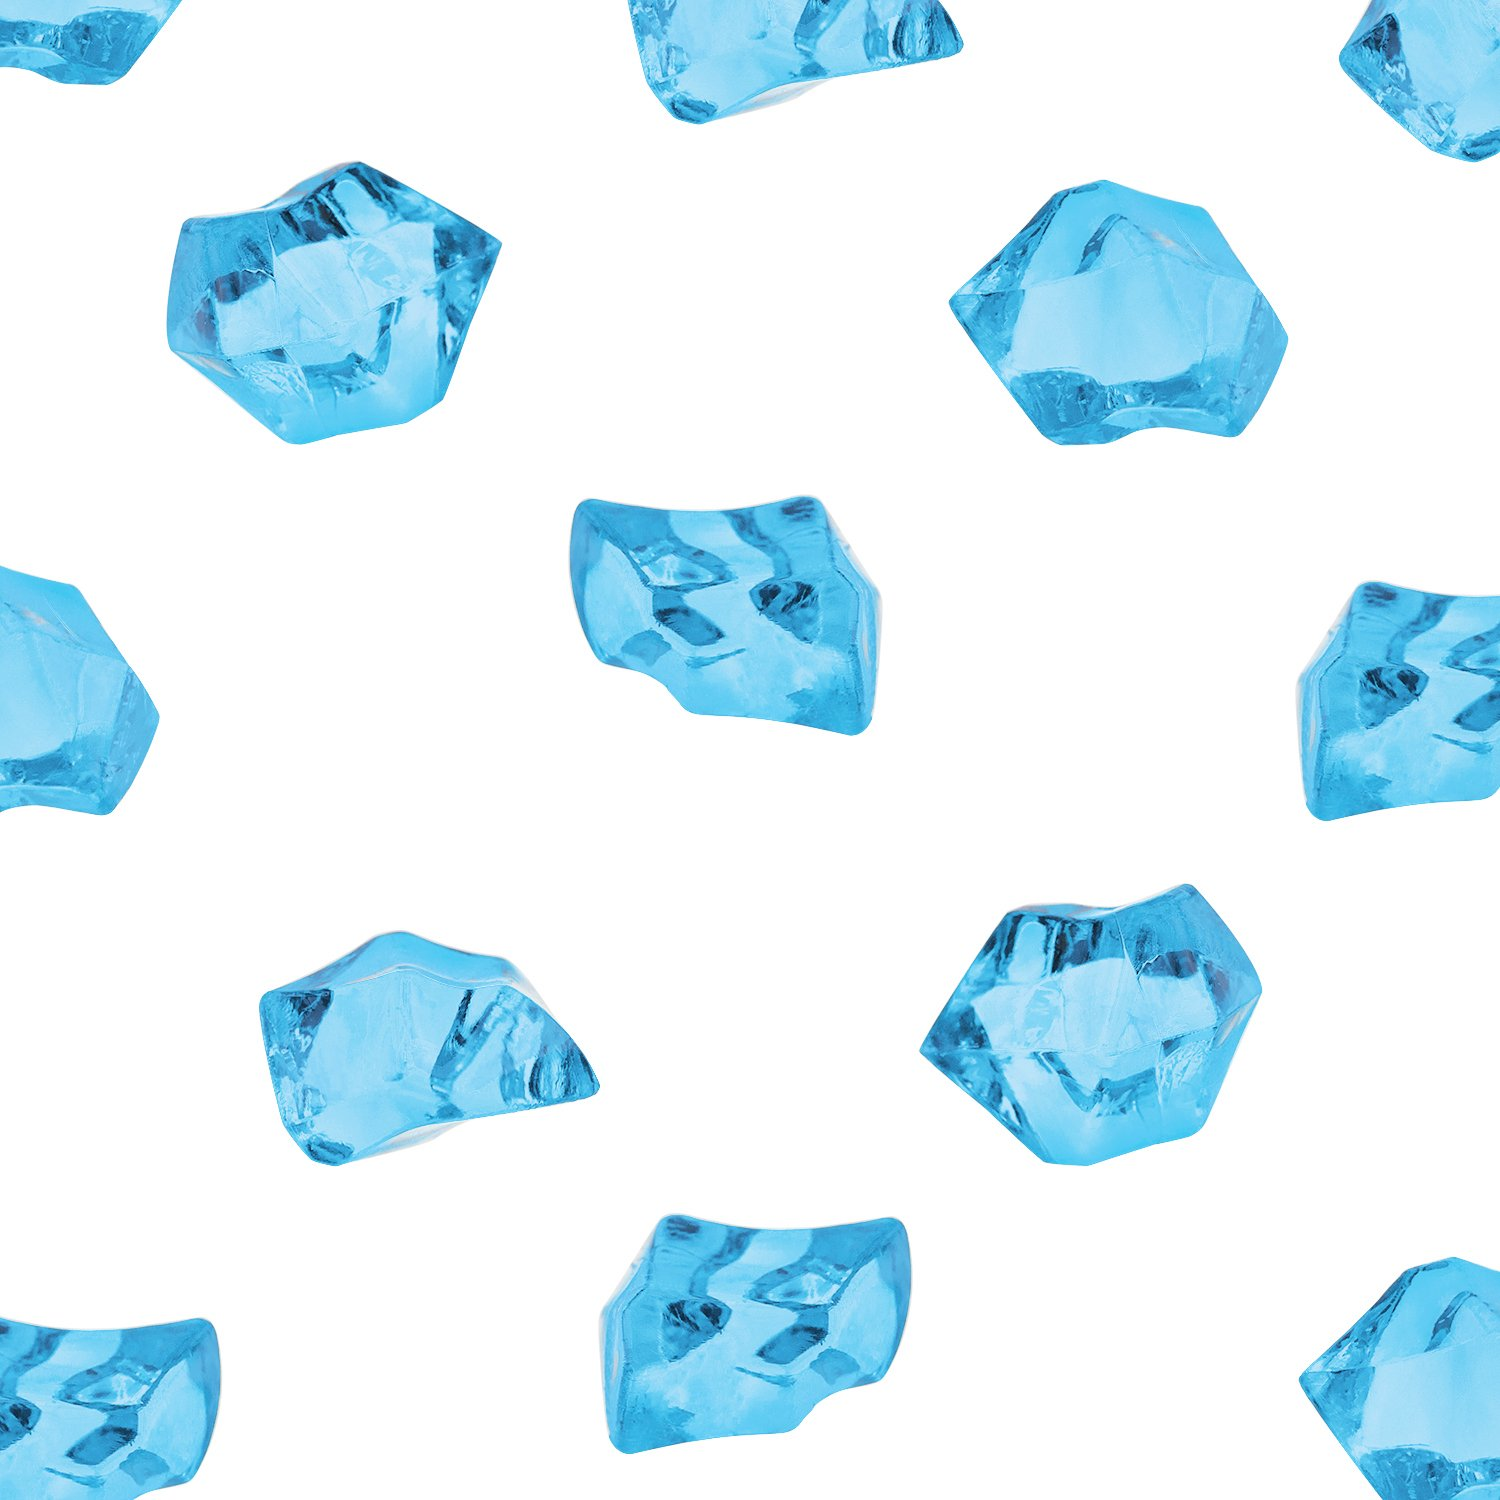 Acrylic Color Ice Rock Crystals Treasure Gems for Table Scatters, Vase Fillers, Event, Wedding, Birthday Decoration Favor, Arts & Crafts (385 Pieces) by Super Z Outlet (Blue)